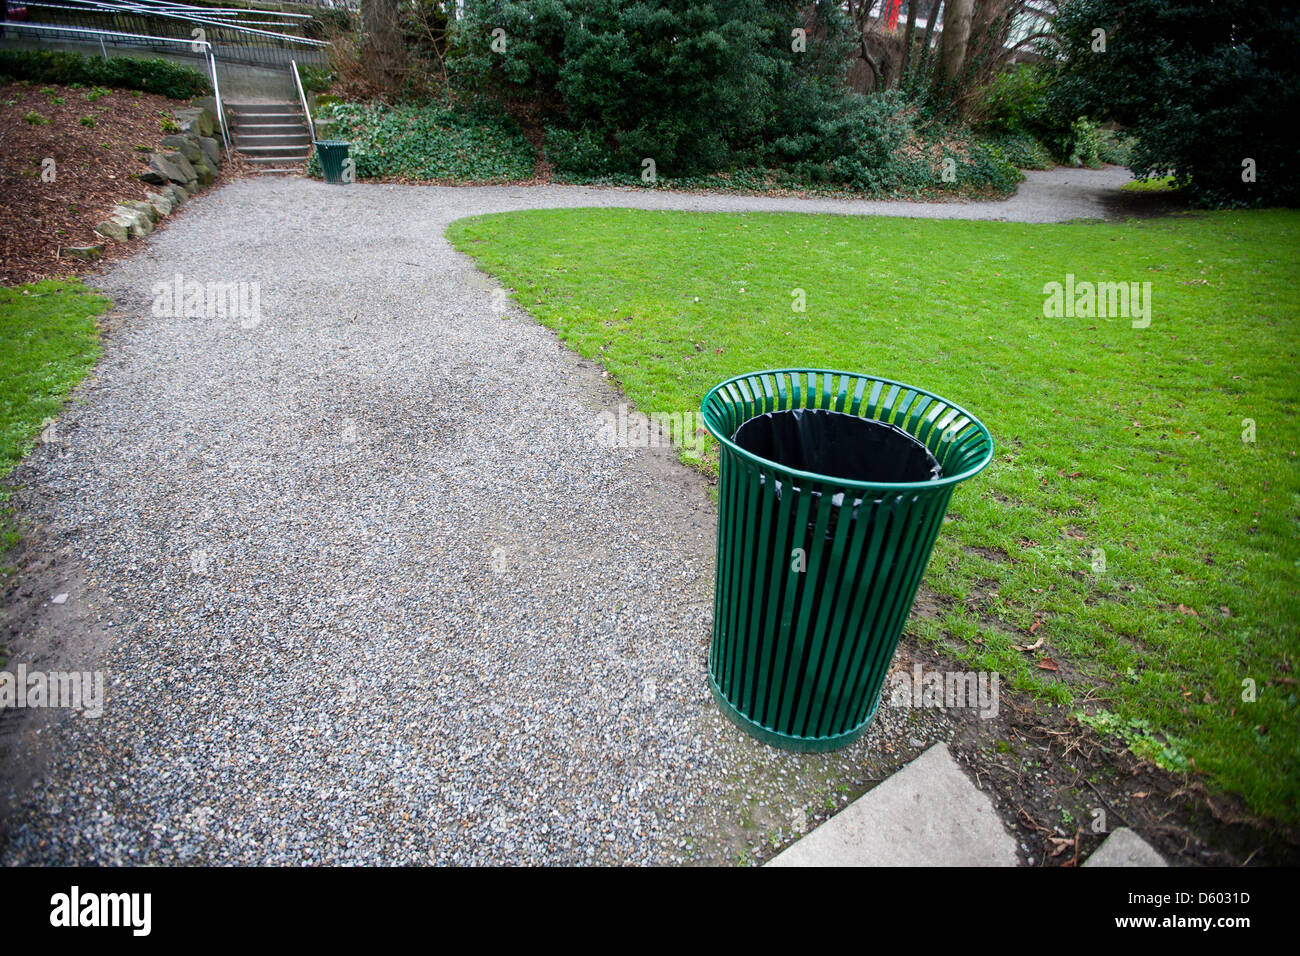 Wide ngle view of trash can by  path in  park Stock Photo